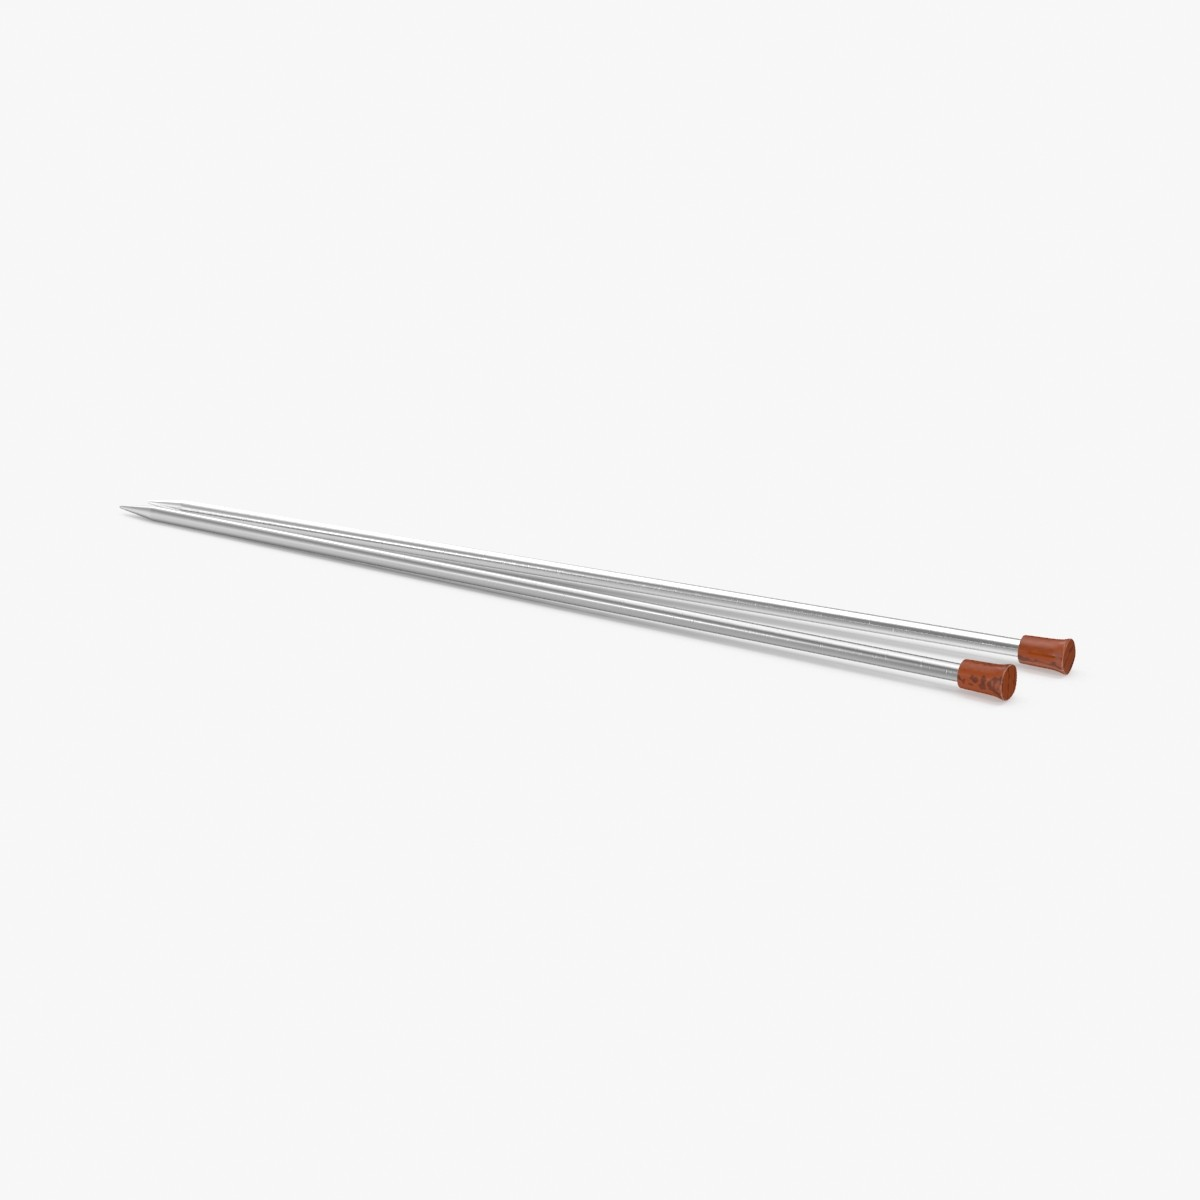 knitting needles 02 3d max